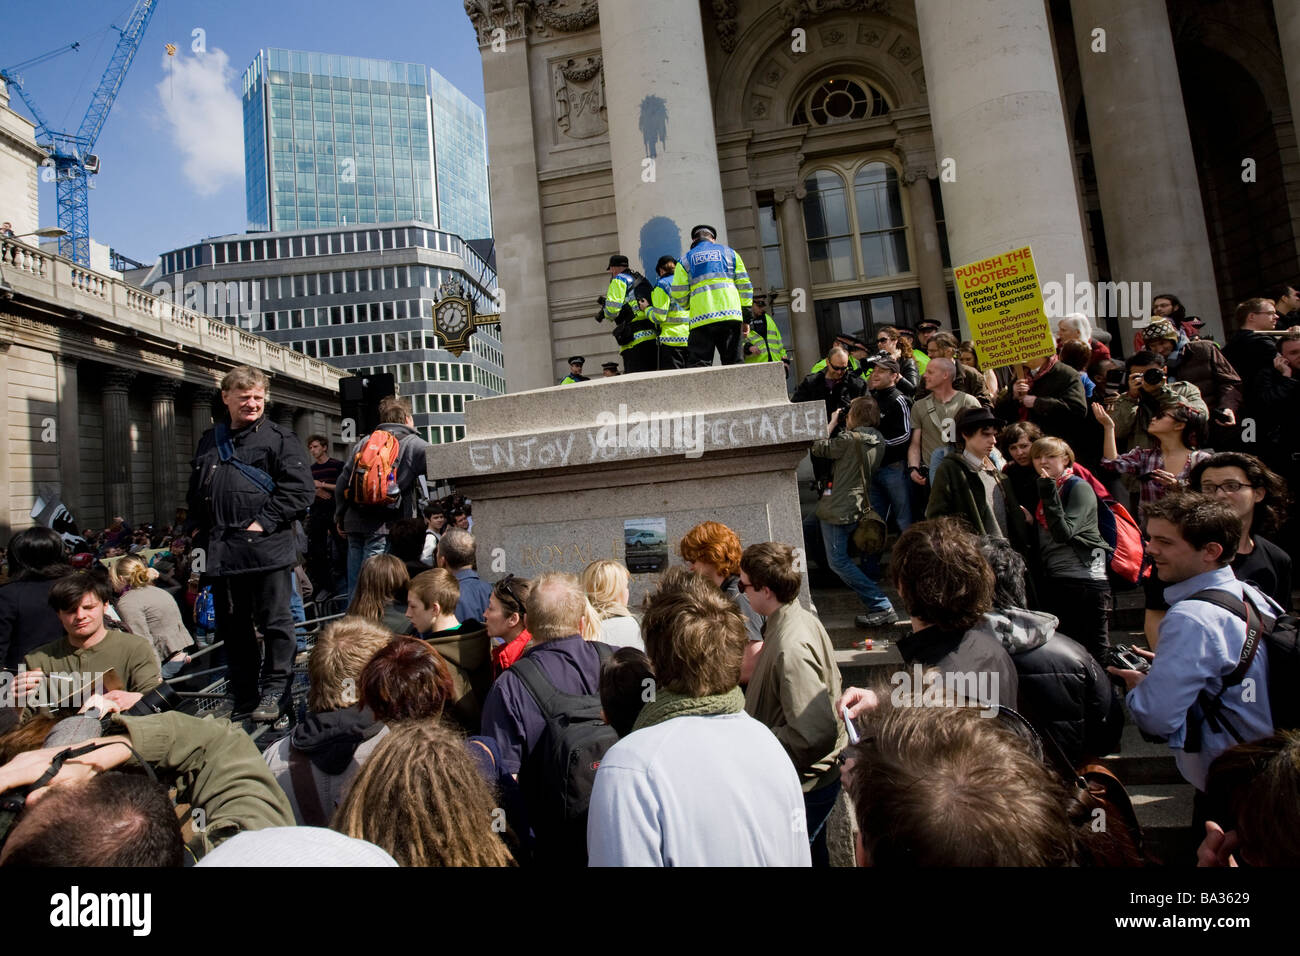 Police watch crowds from above at the G20 protest at Bank of England - Stock Image